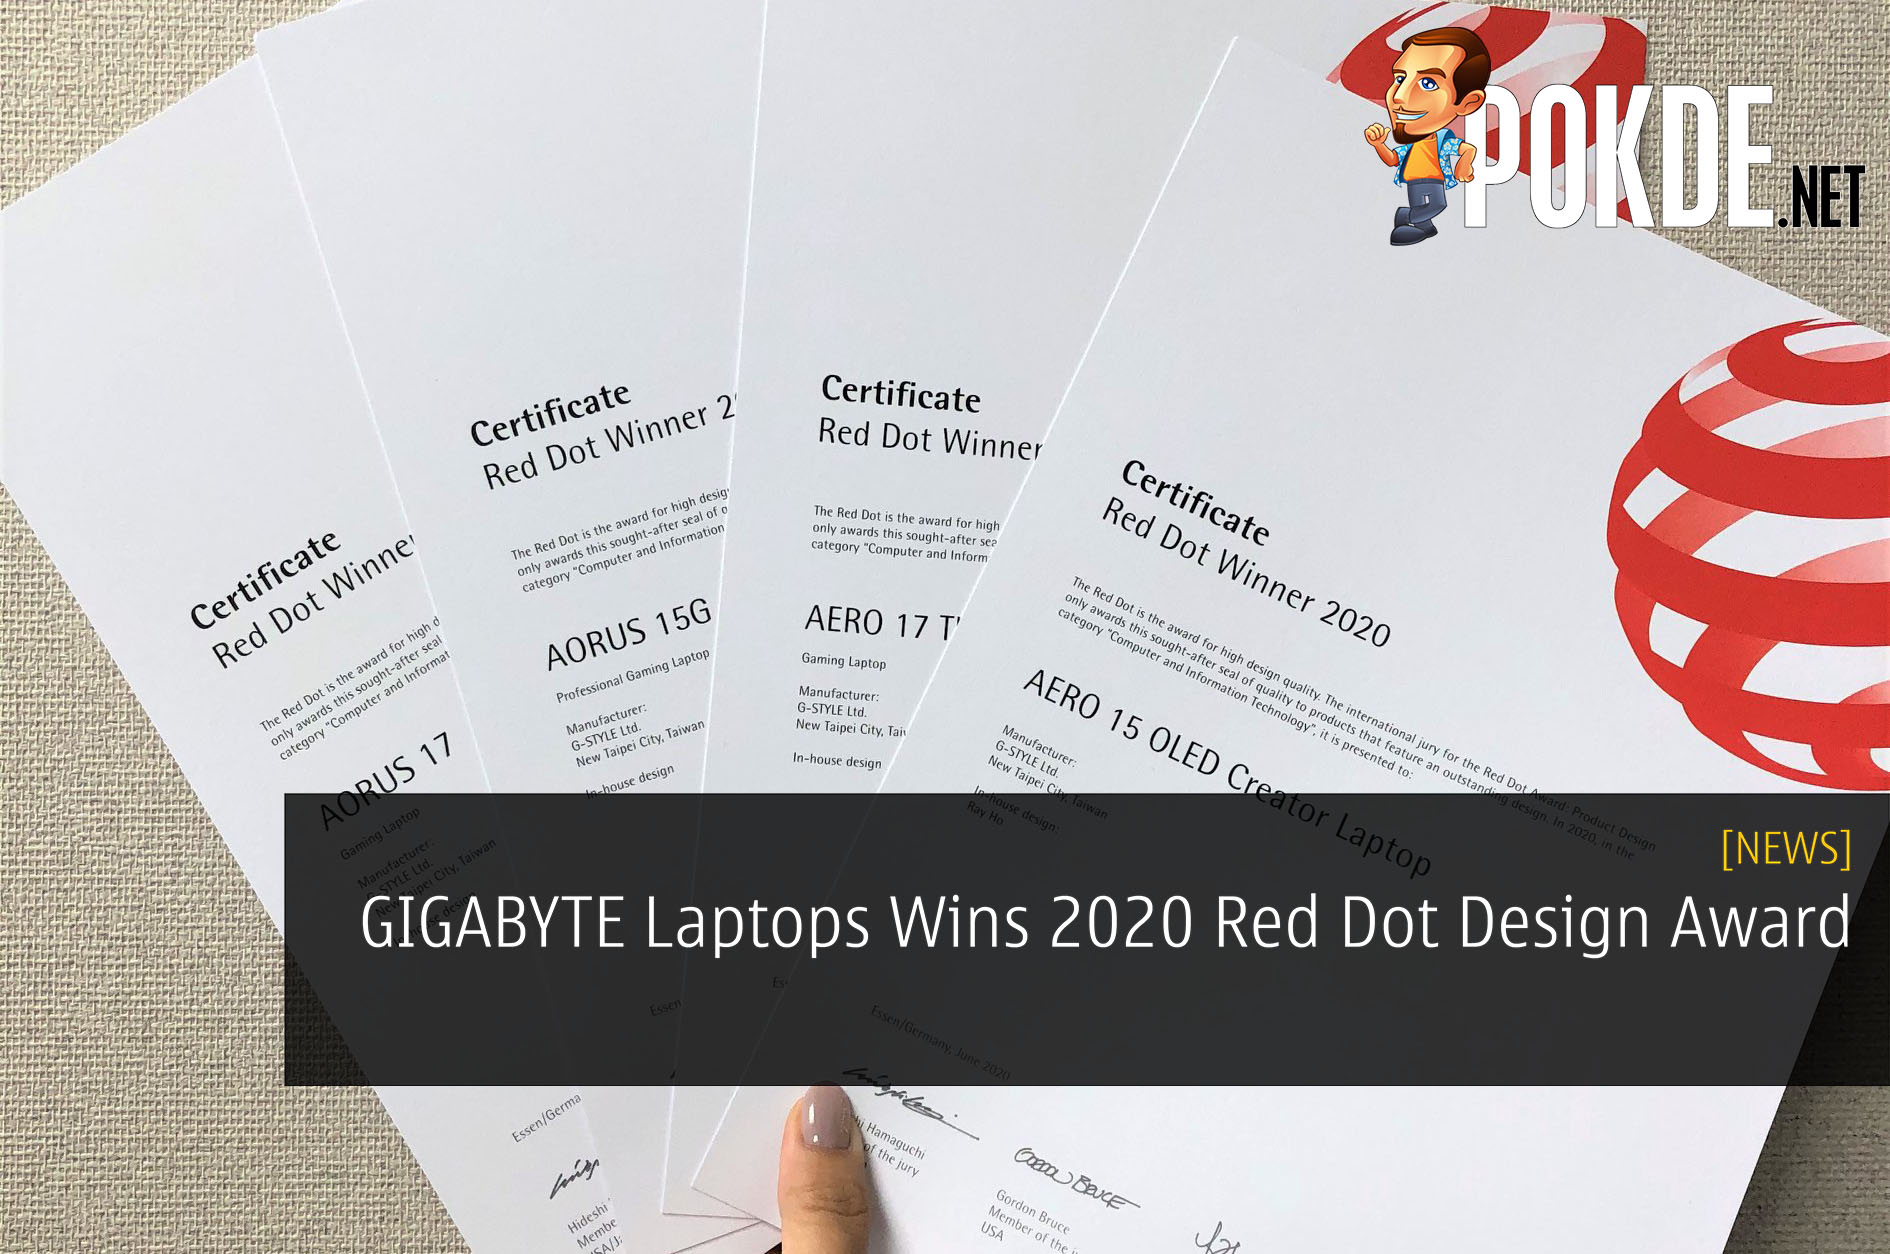 GIGABYTE Laptops Wins 2020 Red Dot Design Award 6